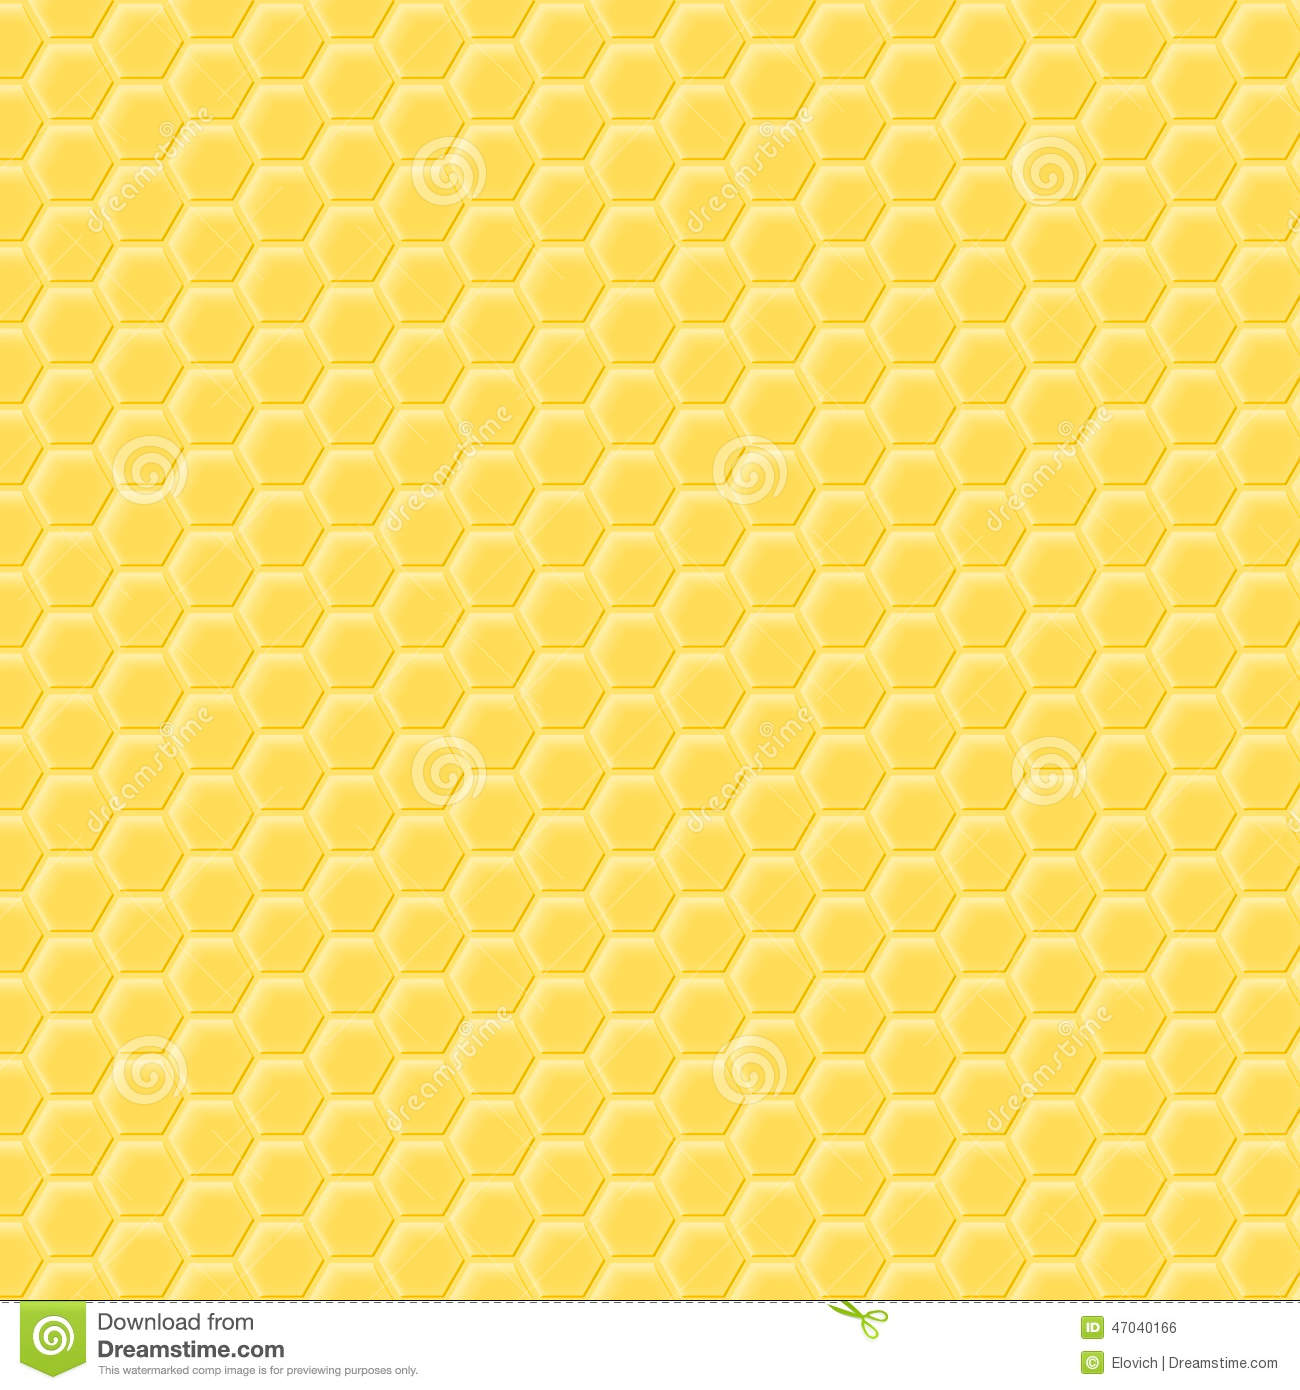 Bee Hive Pattern Stock Photos Auto Electrical Wiring Diagram Cradlepoint Seamless Honeycomb Illustration